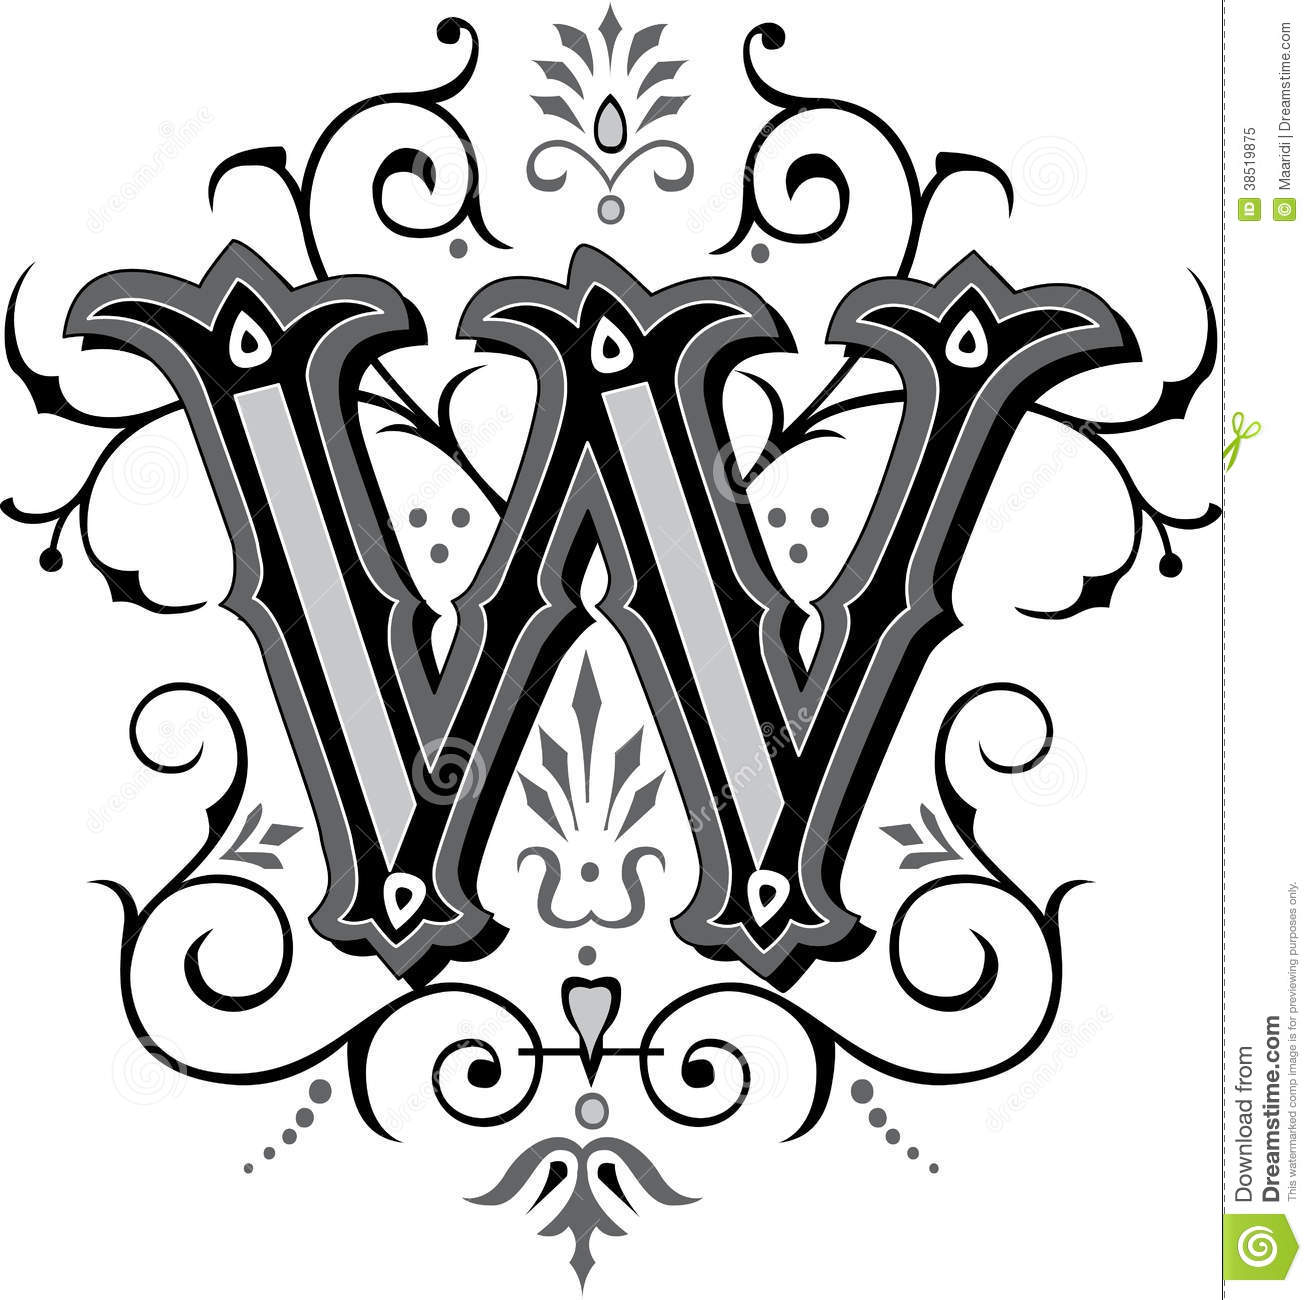 Fancy Letter Designs For Tattoos